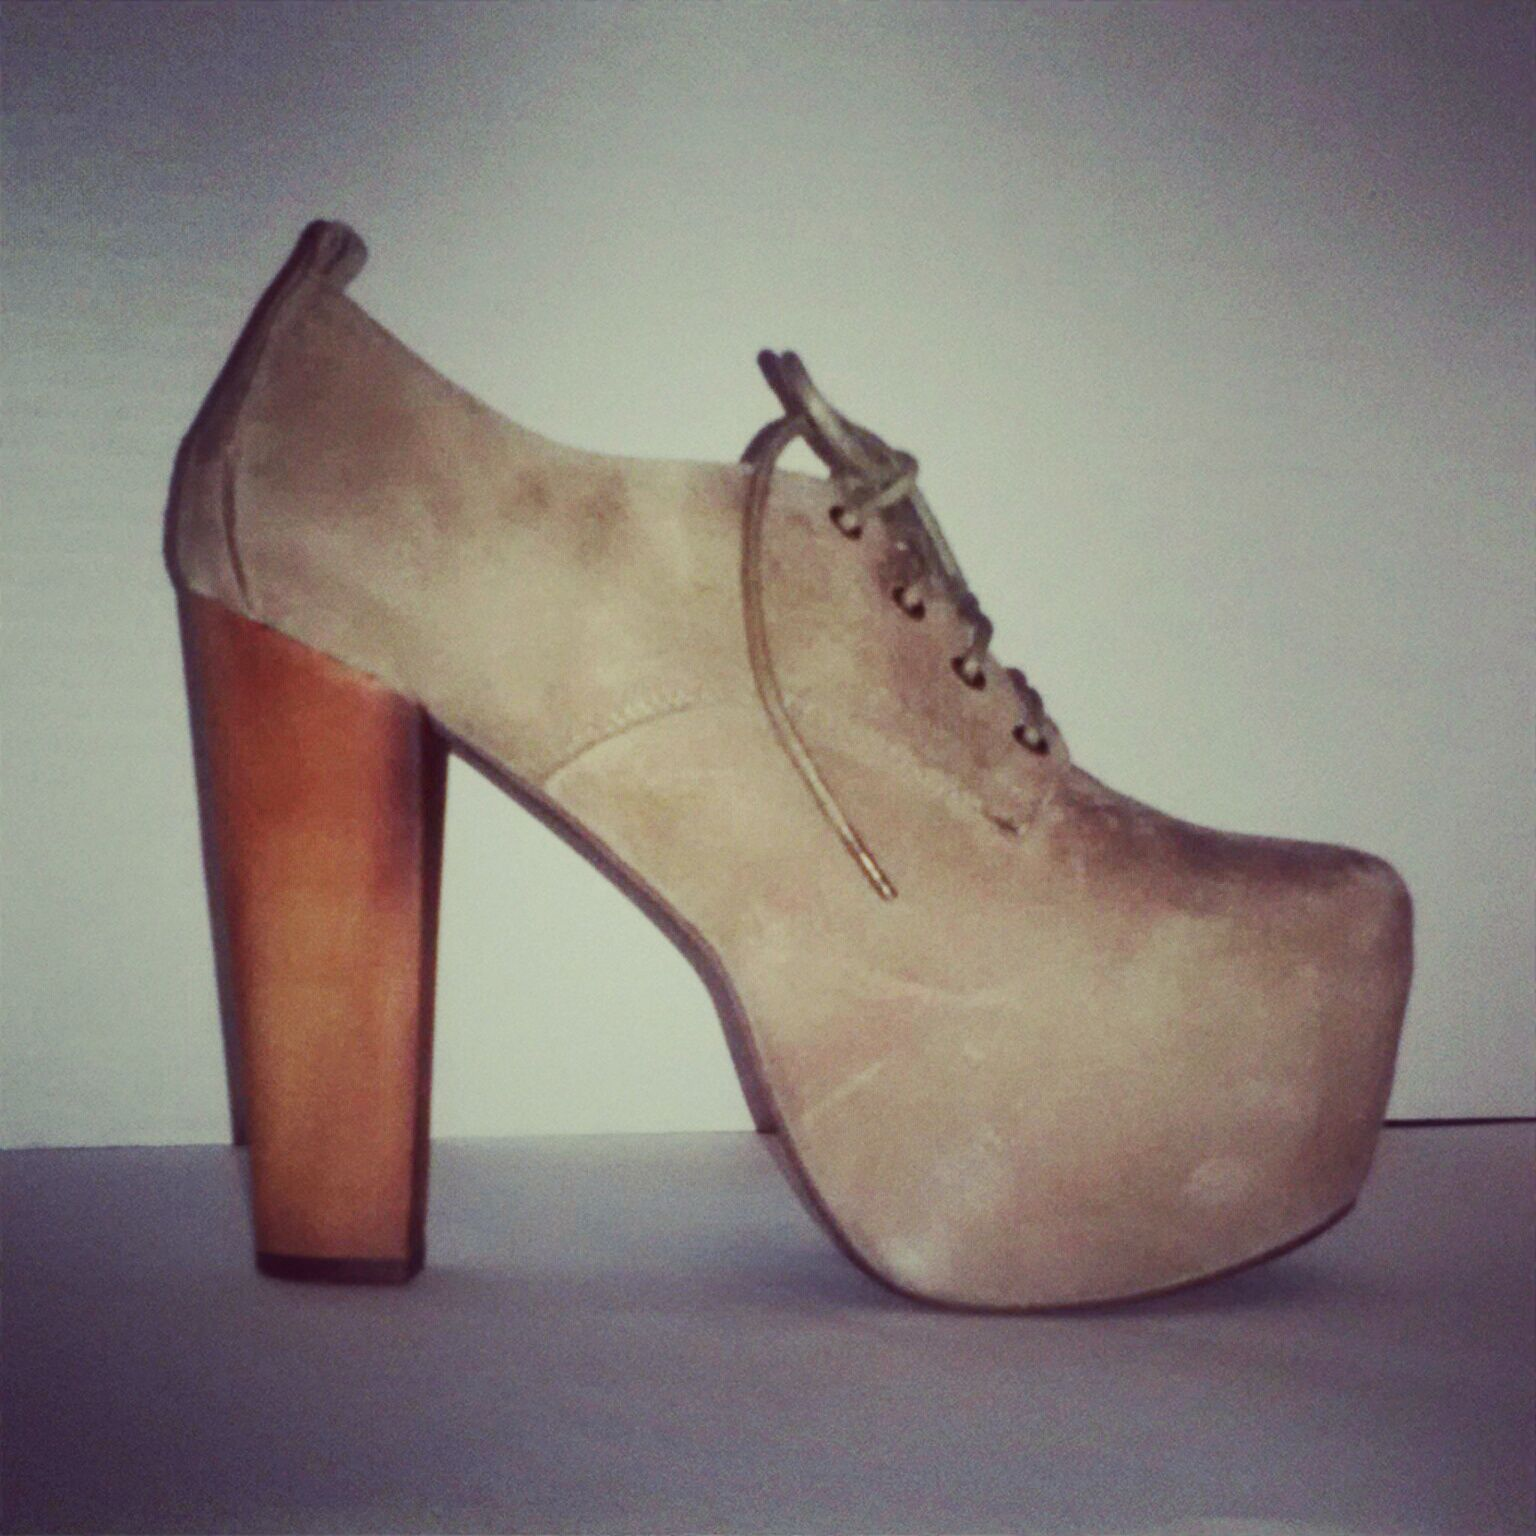 #JeffreyCampbell #Fairlane in Taupe from #NastyGal